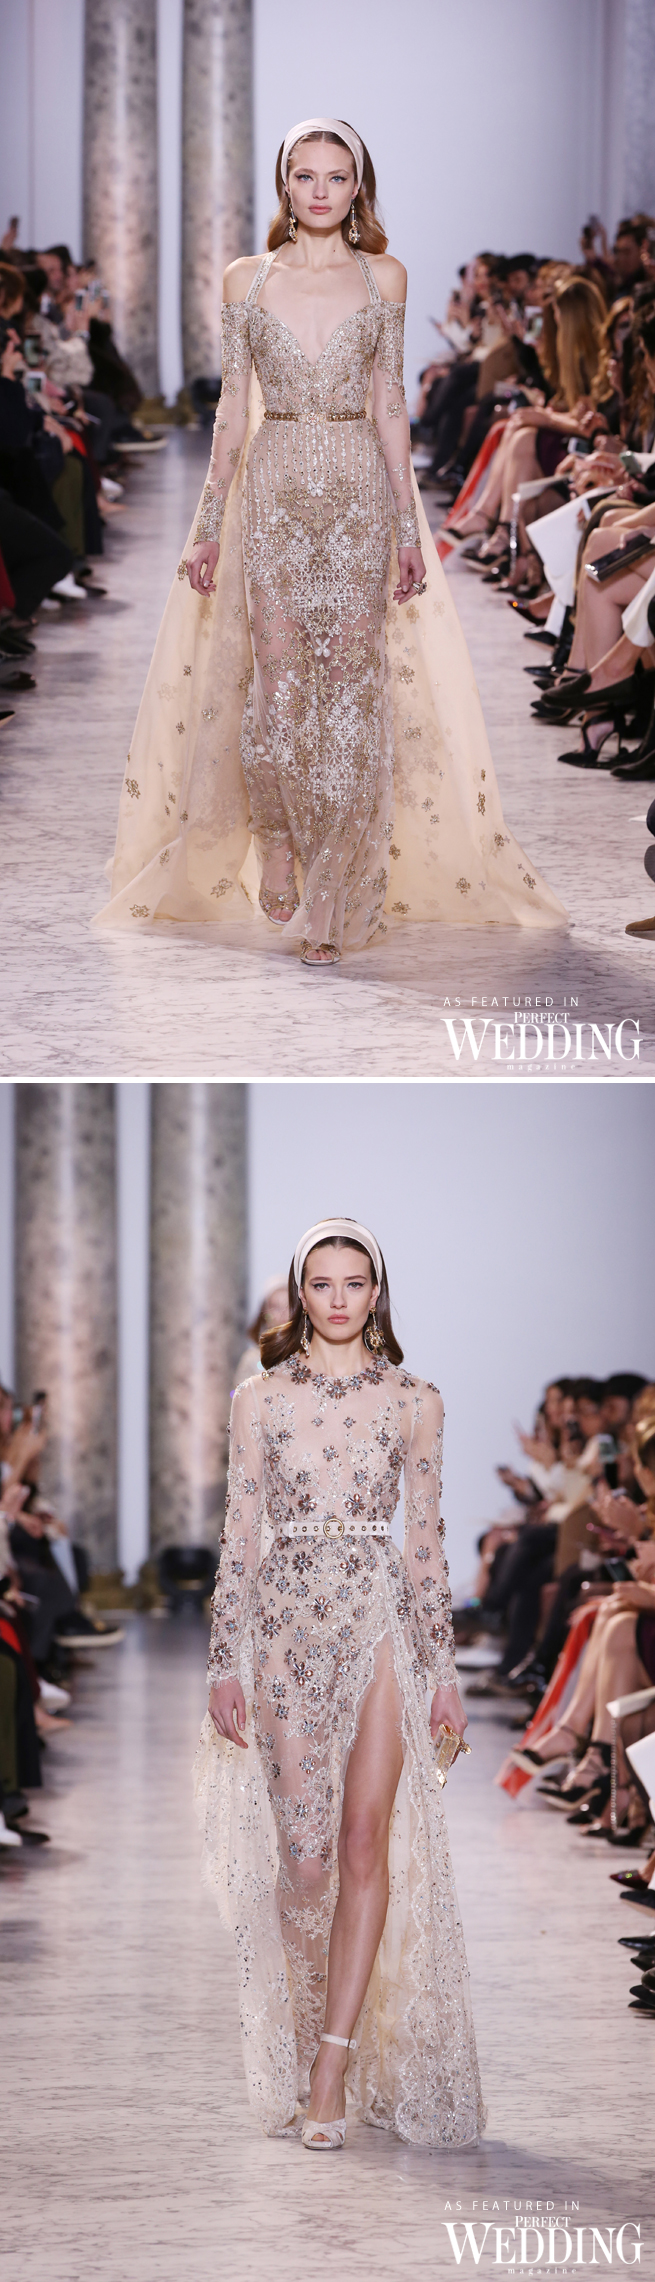 Elie Saab, Elie Saab Haute couture, The Birth Of Light, Elie Saab Spring Summer 2017, Perfect Wedding Magazine, Perfect Wedding Blog